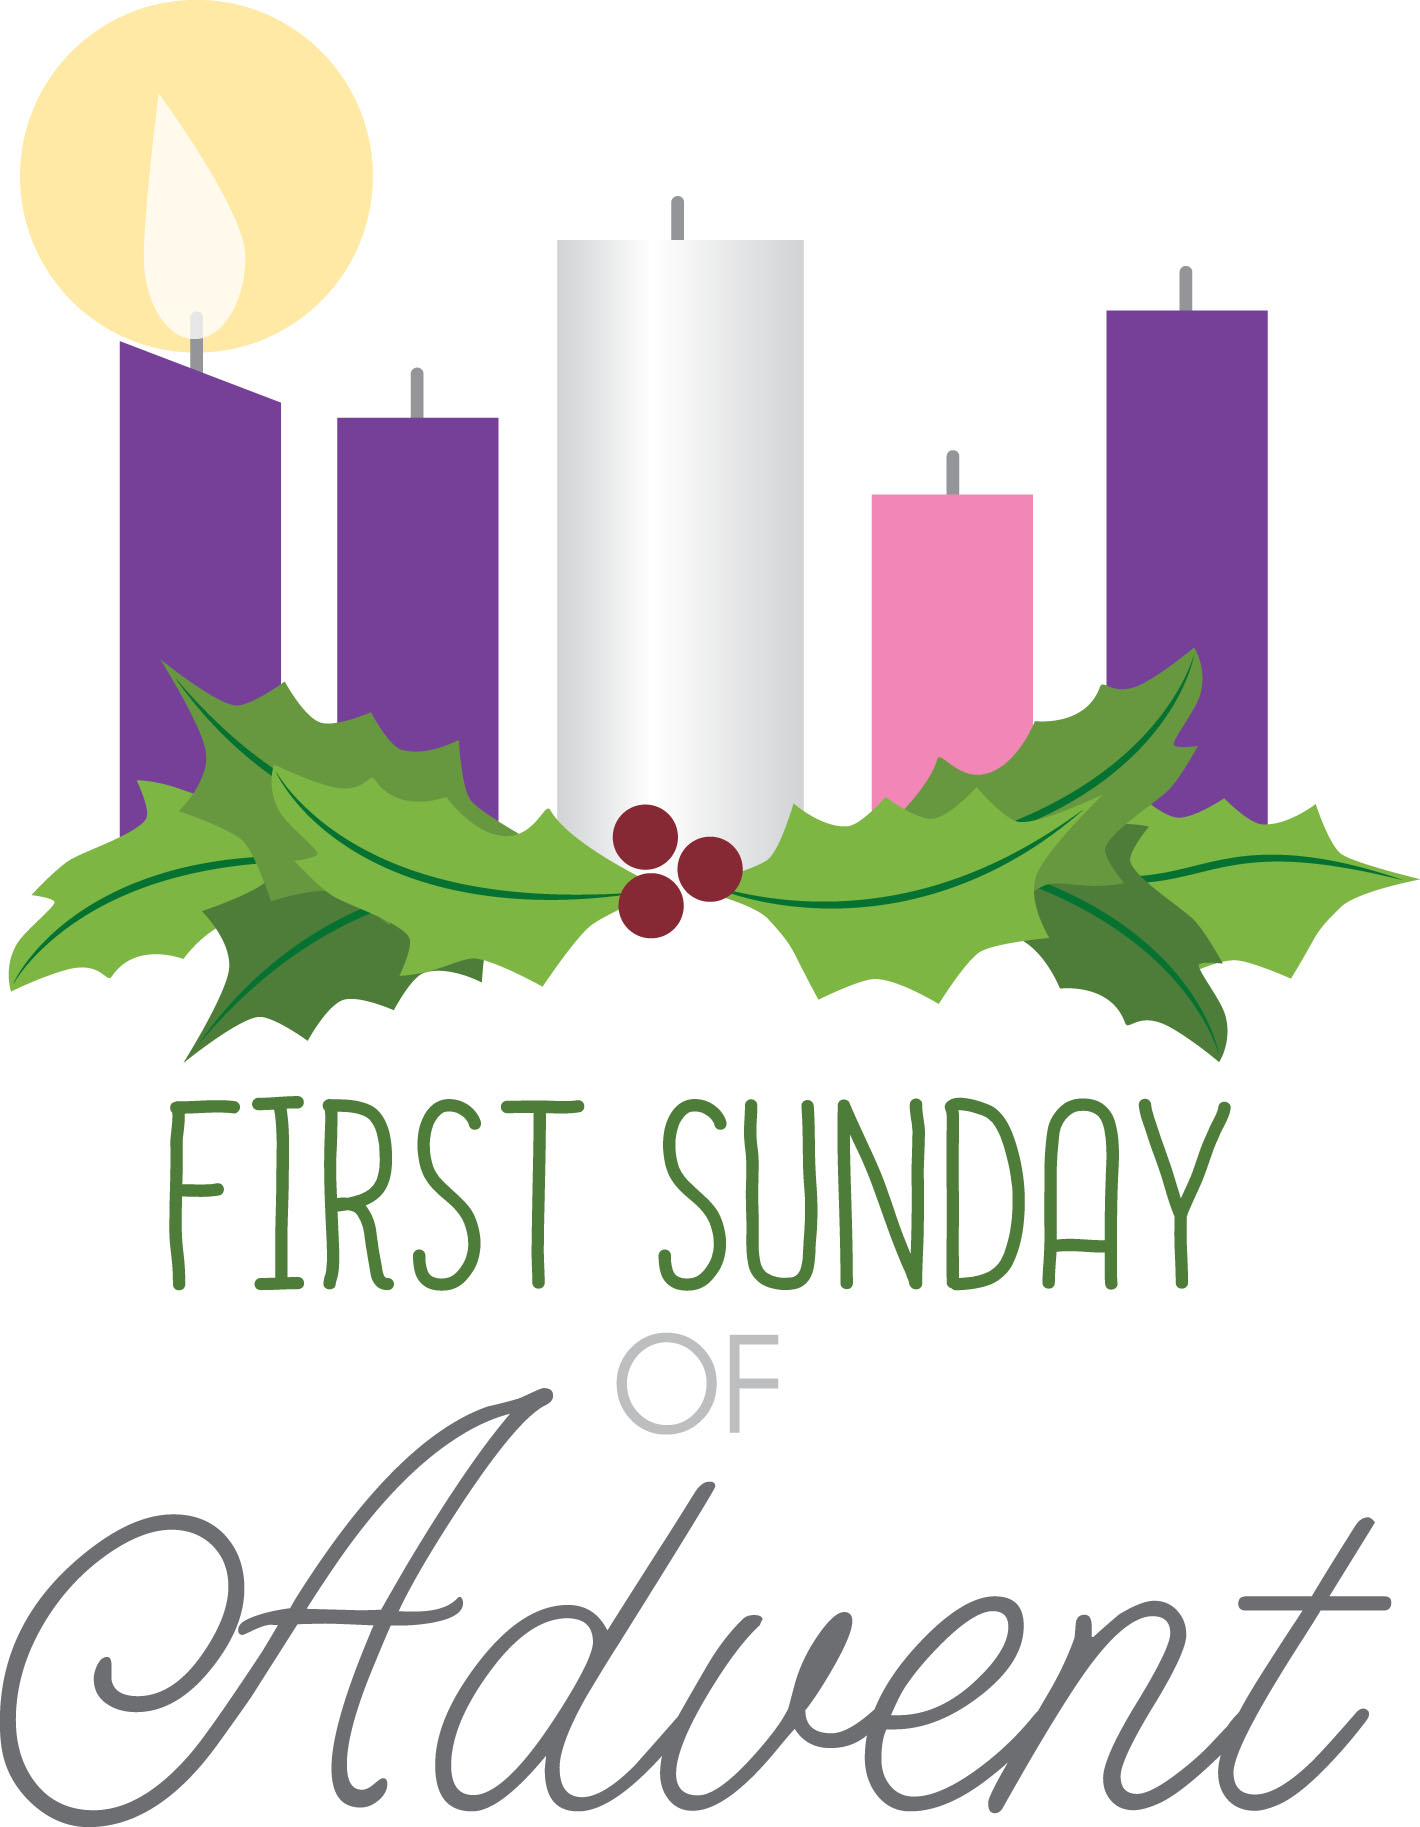 first sunday of advent central united methodist church